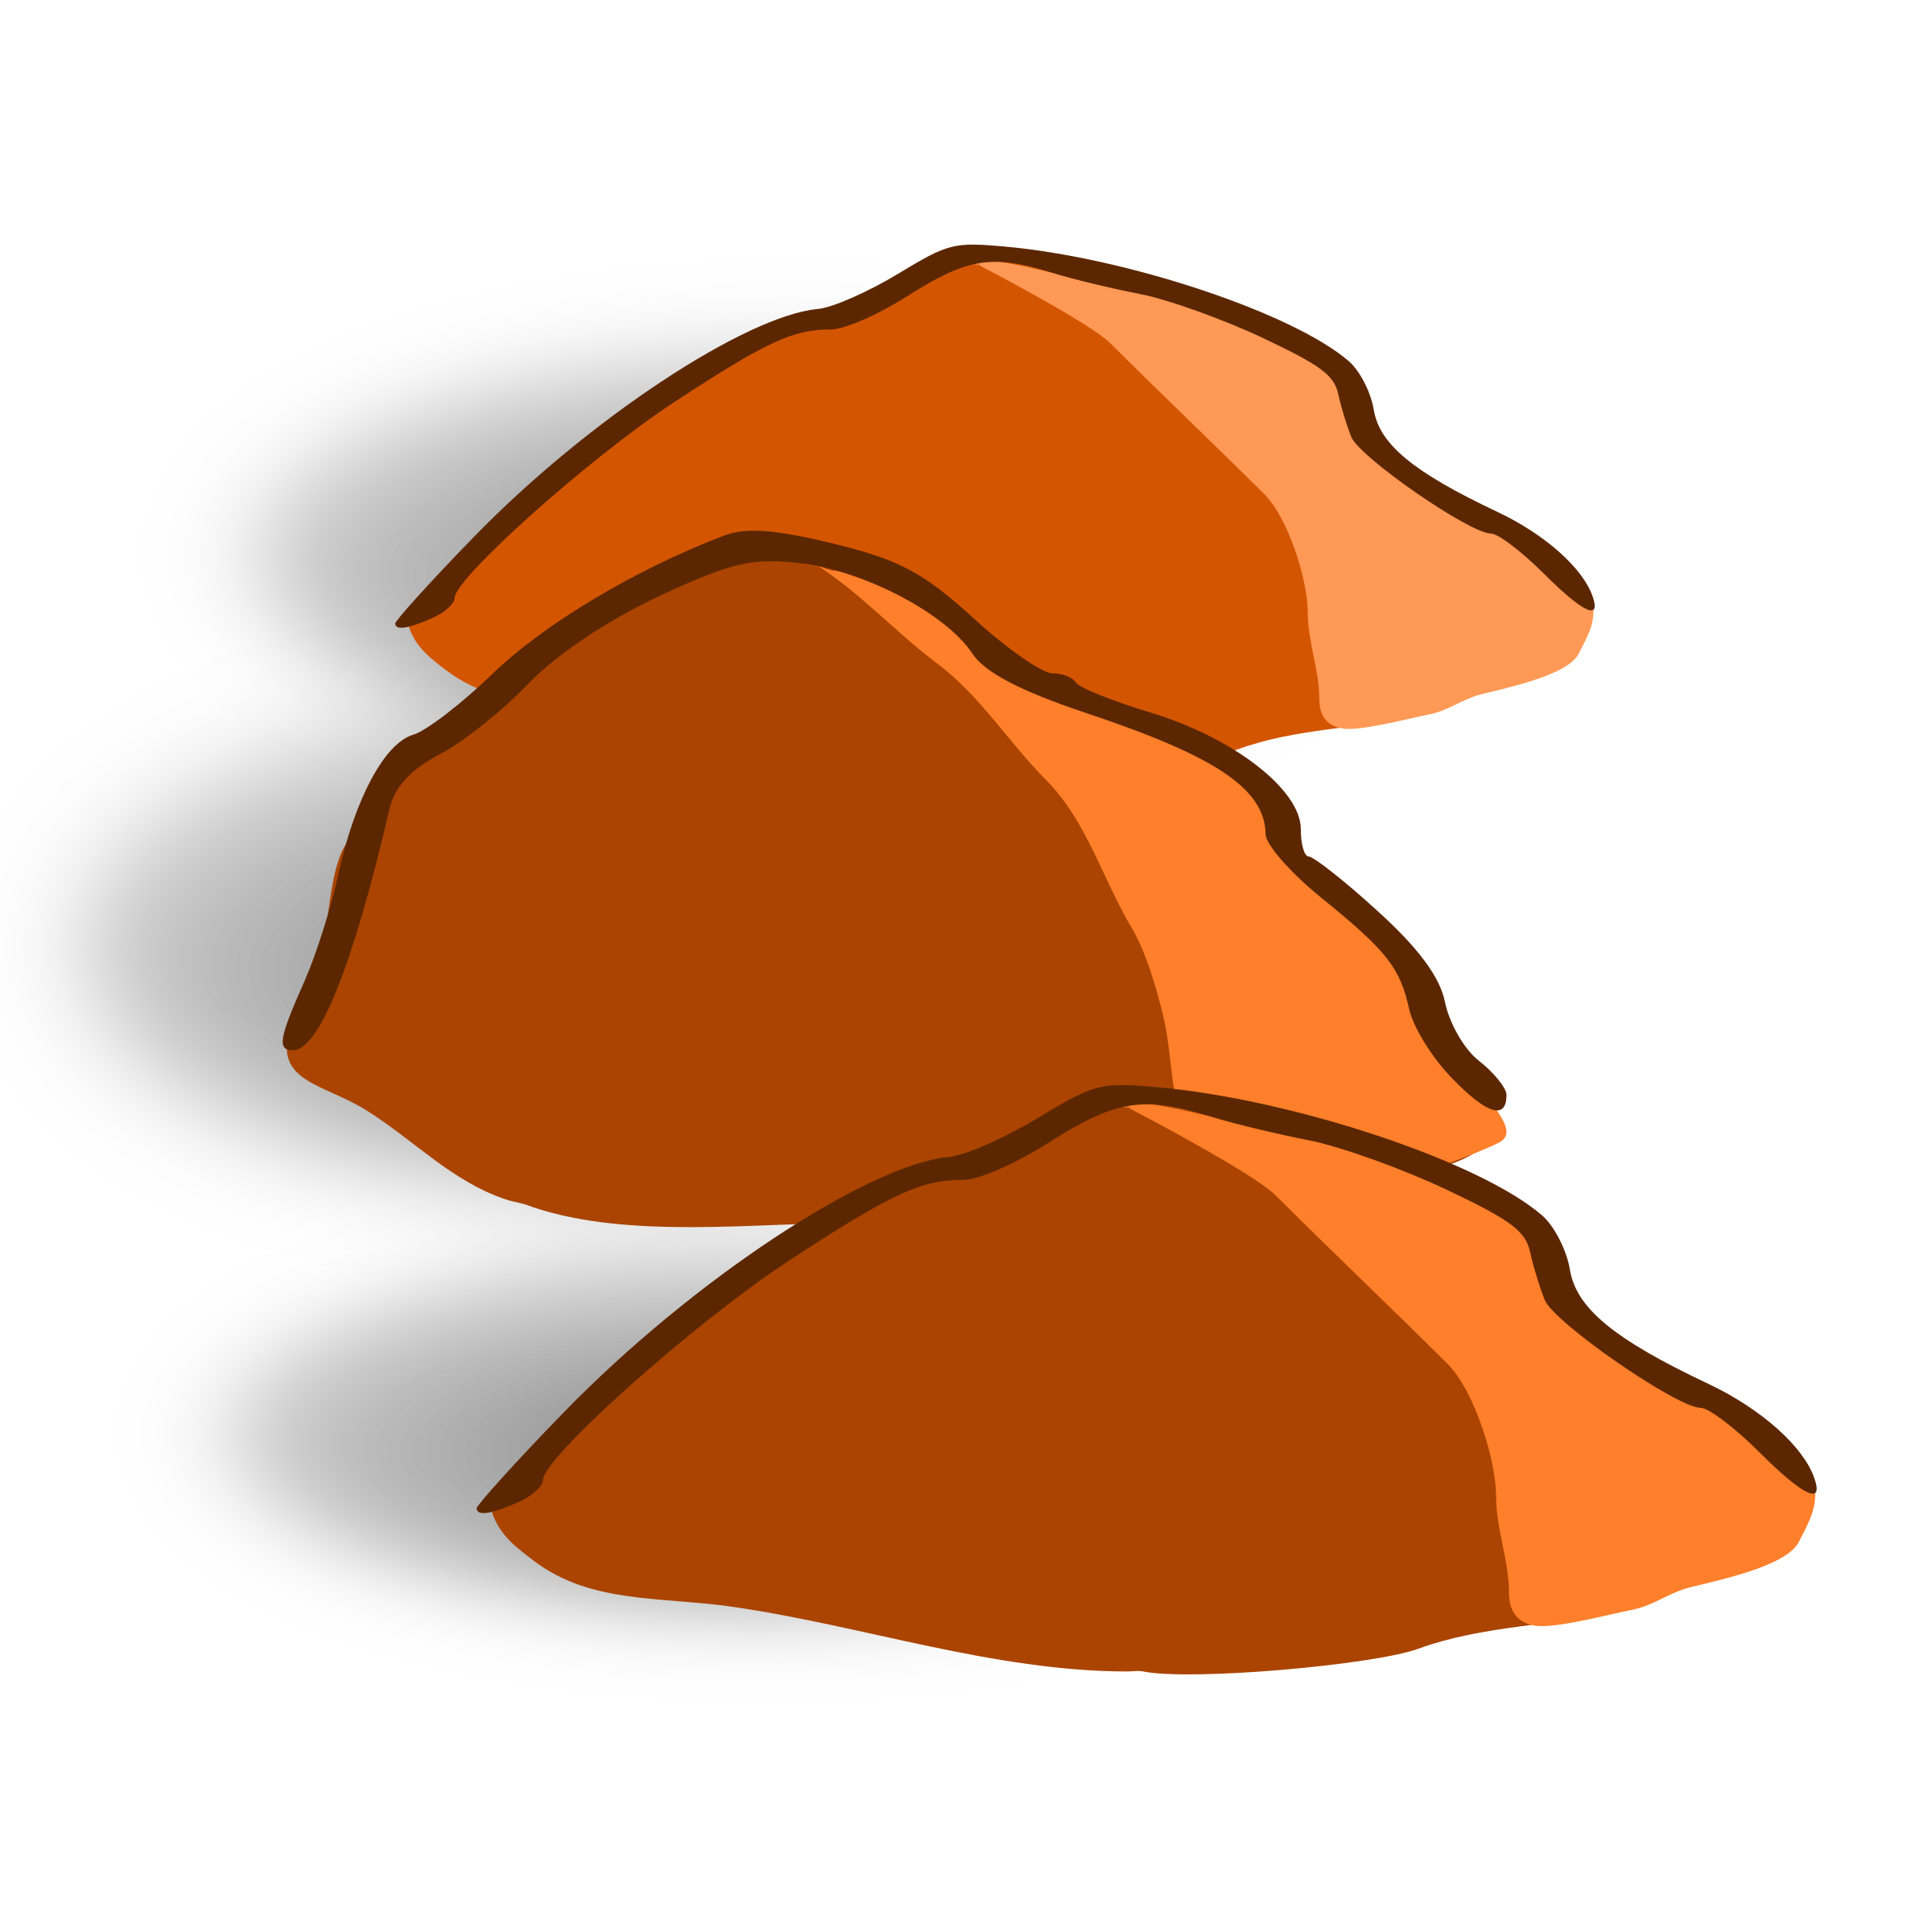 Clipart mountain sand. Hills big image png